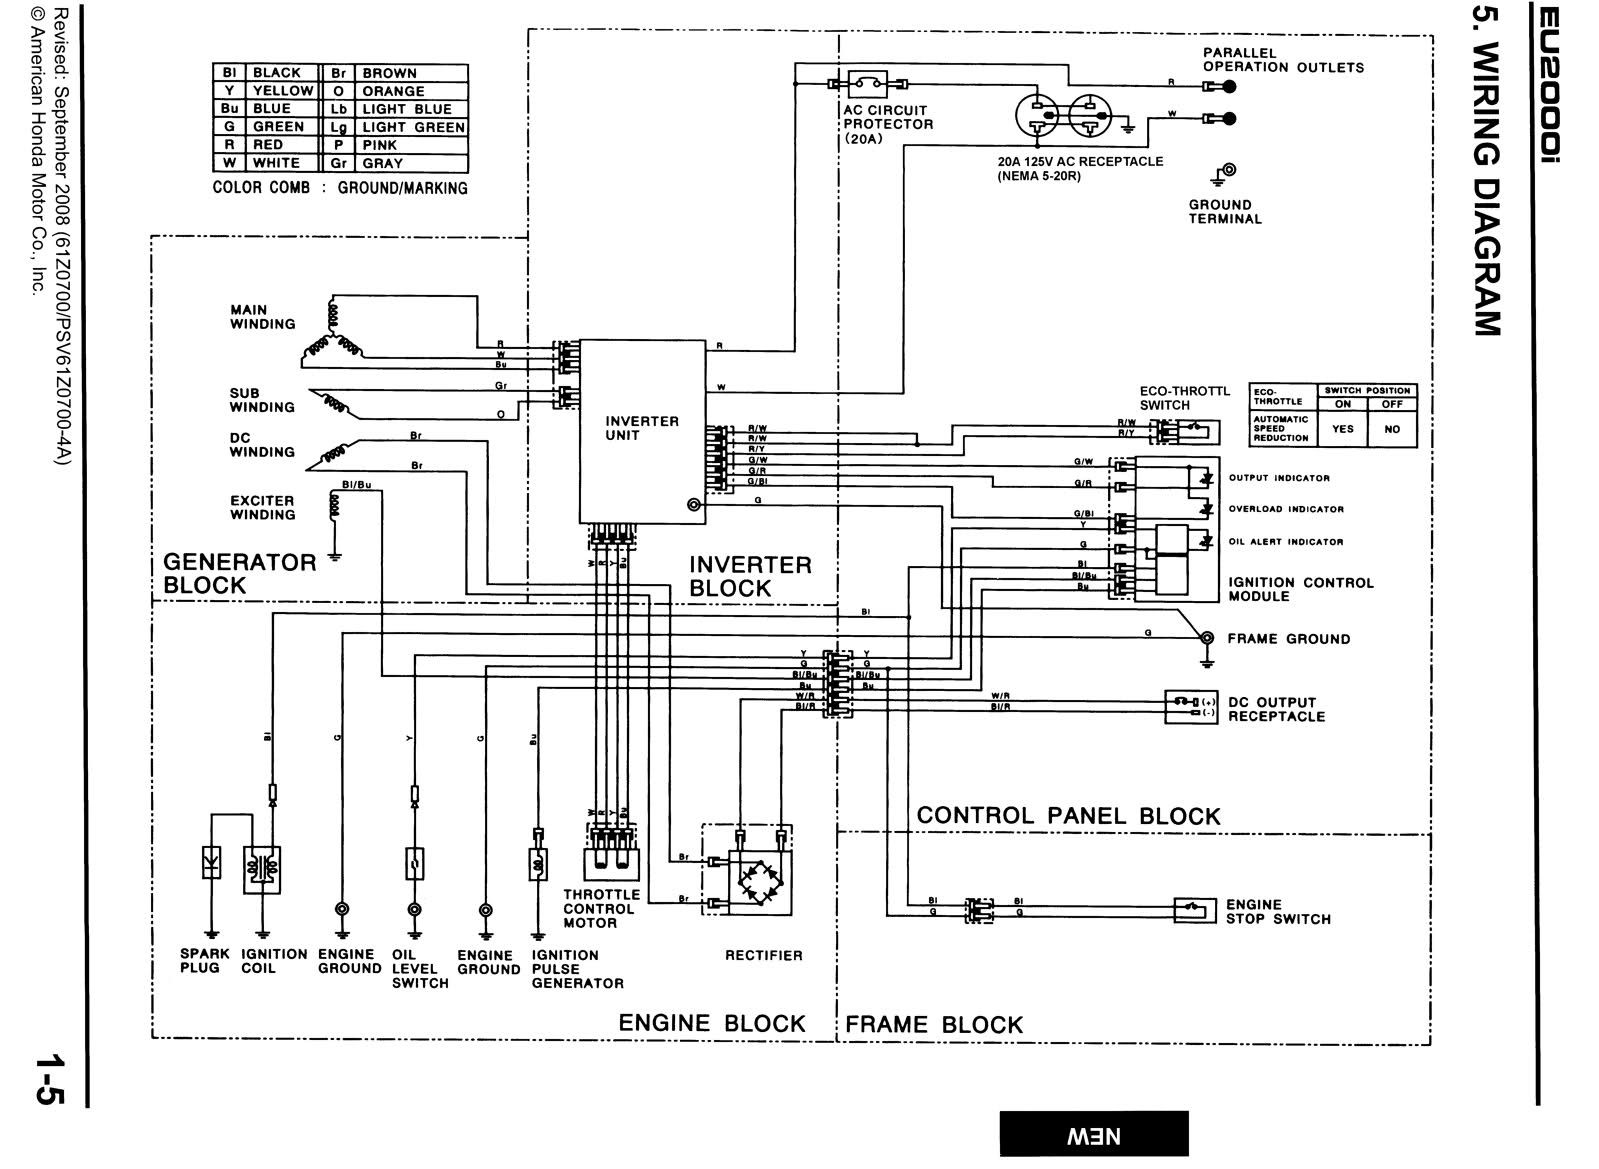 hight resolution of holiday rambler wiring diagrams wiring diagram structures 2004 ford escape wiring harness nowyaknow